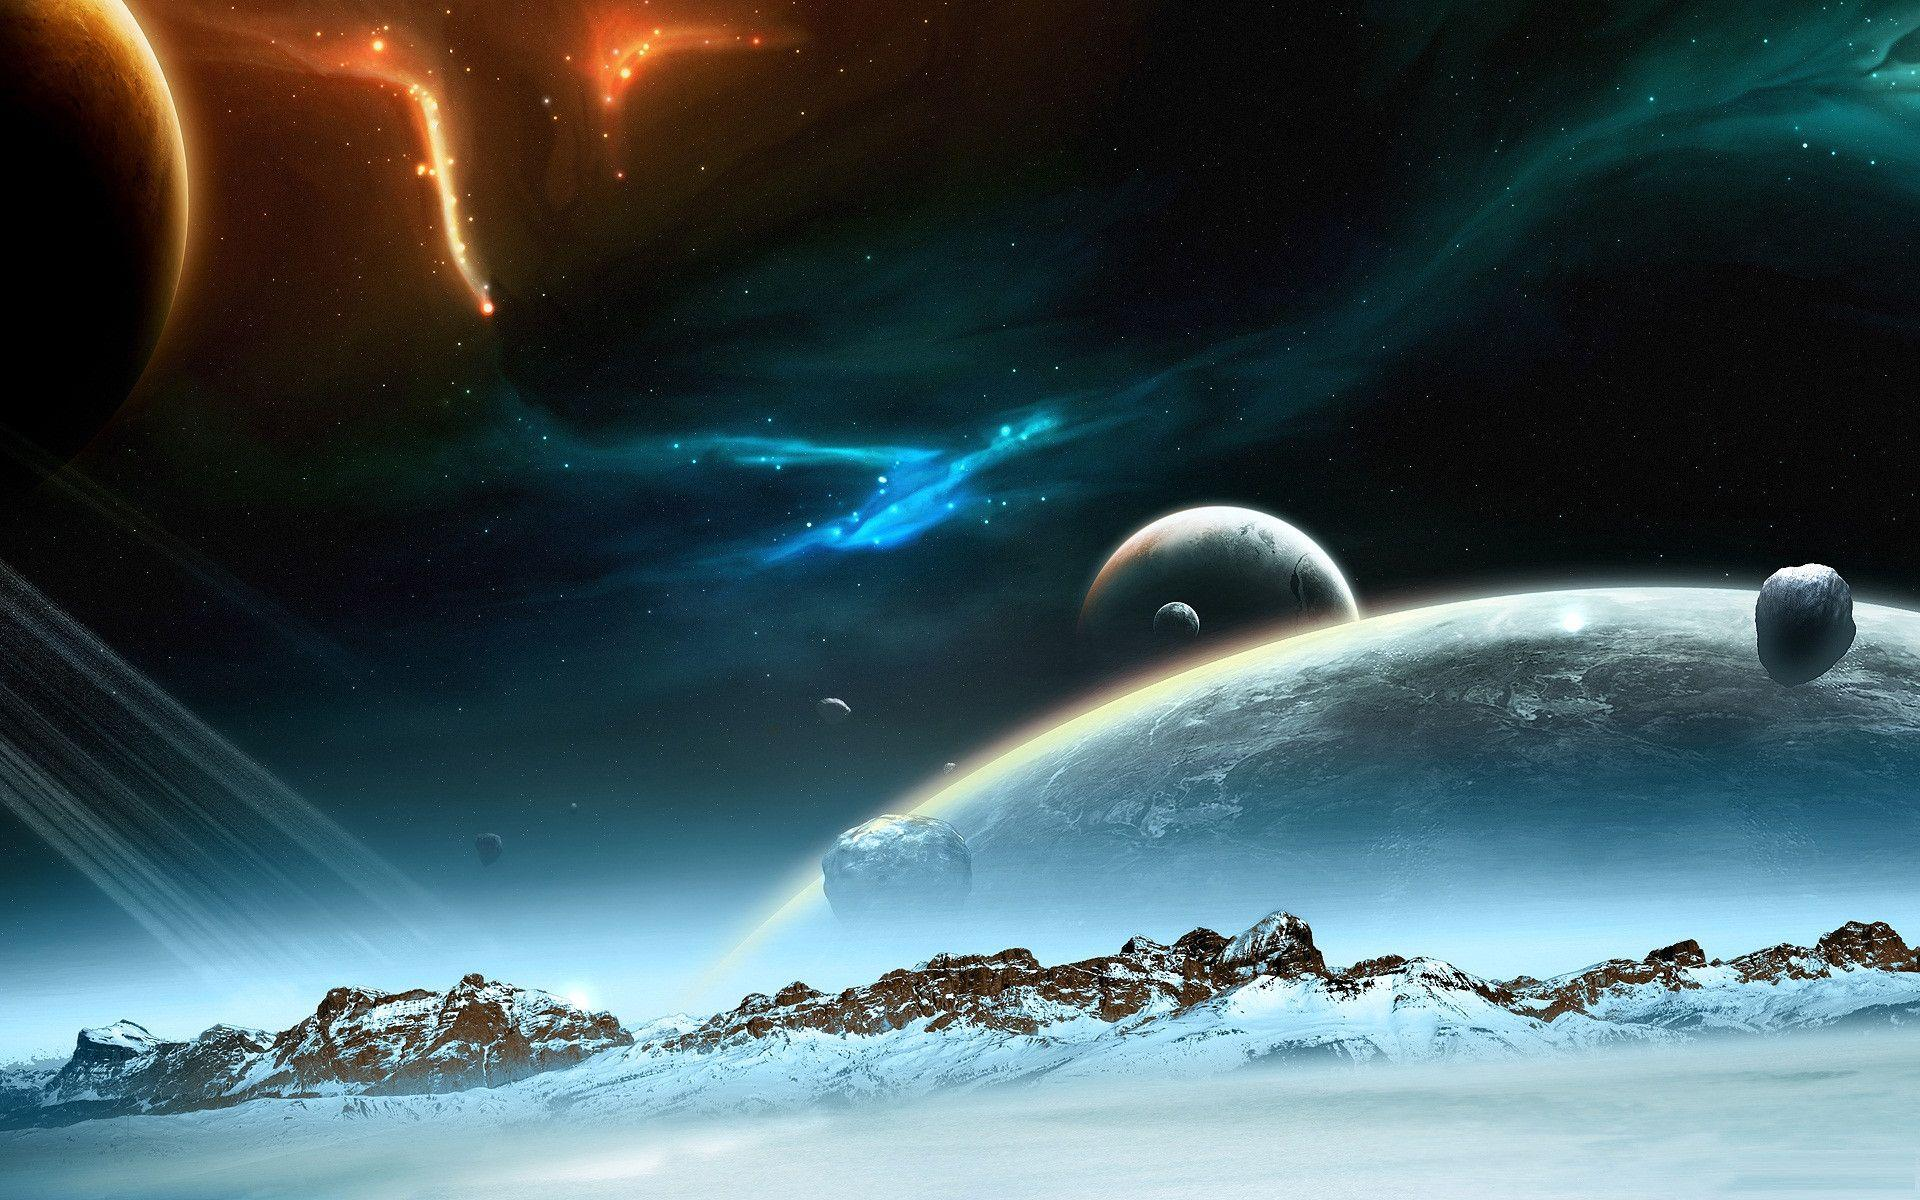 space desktop wallpaper backgrounds - photo #38